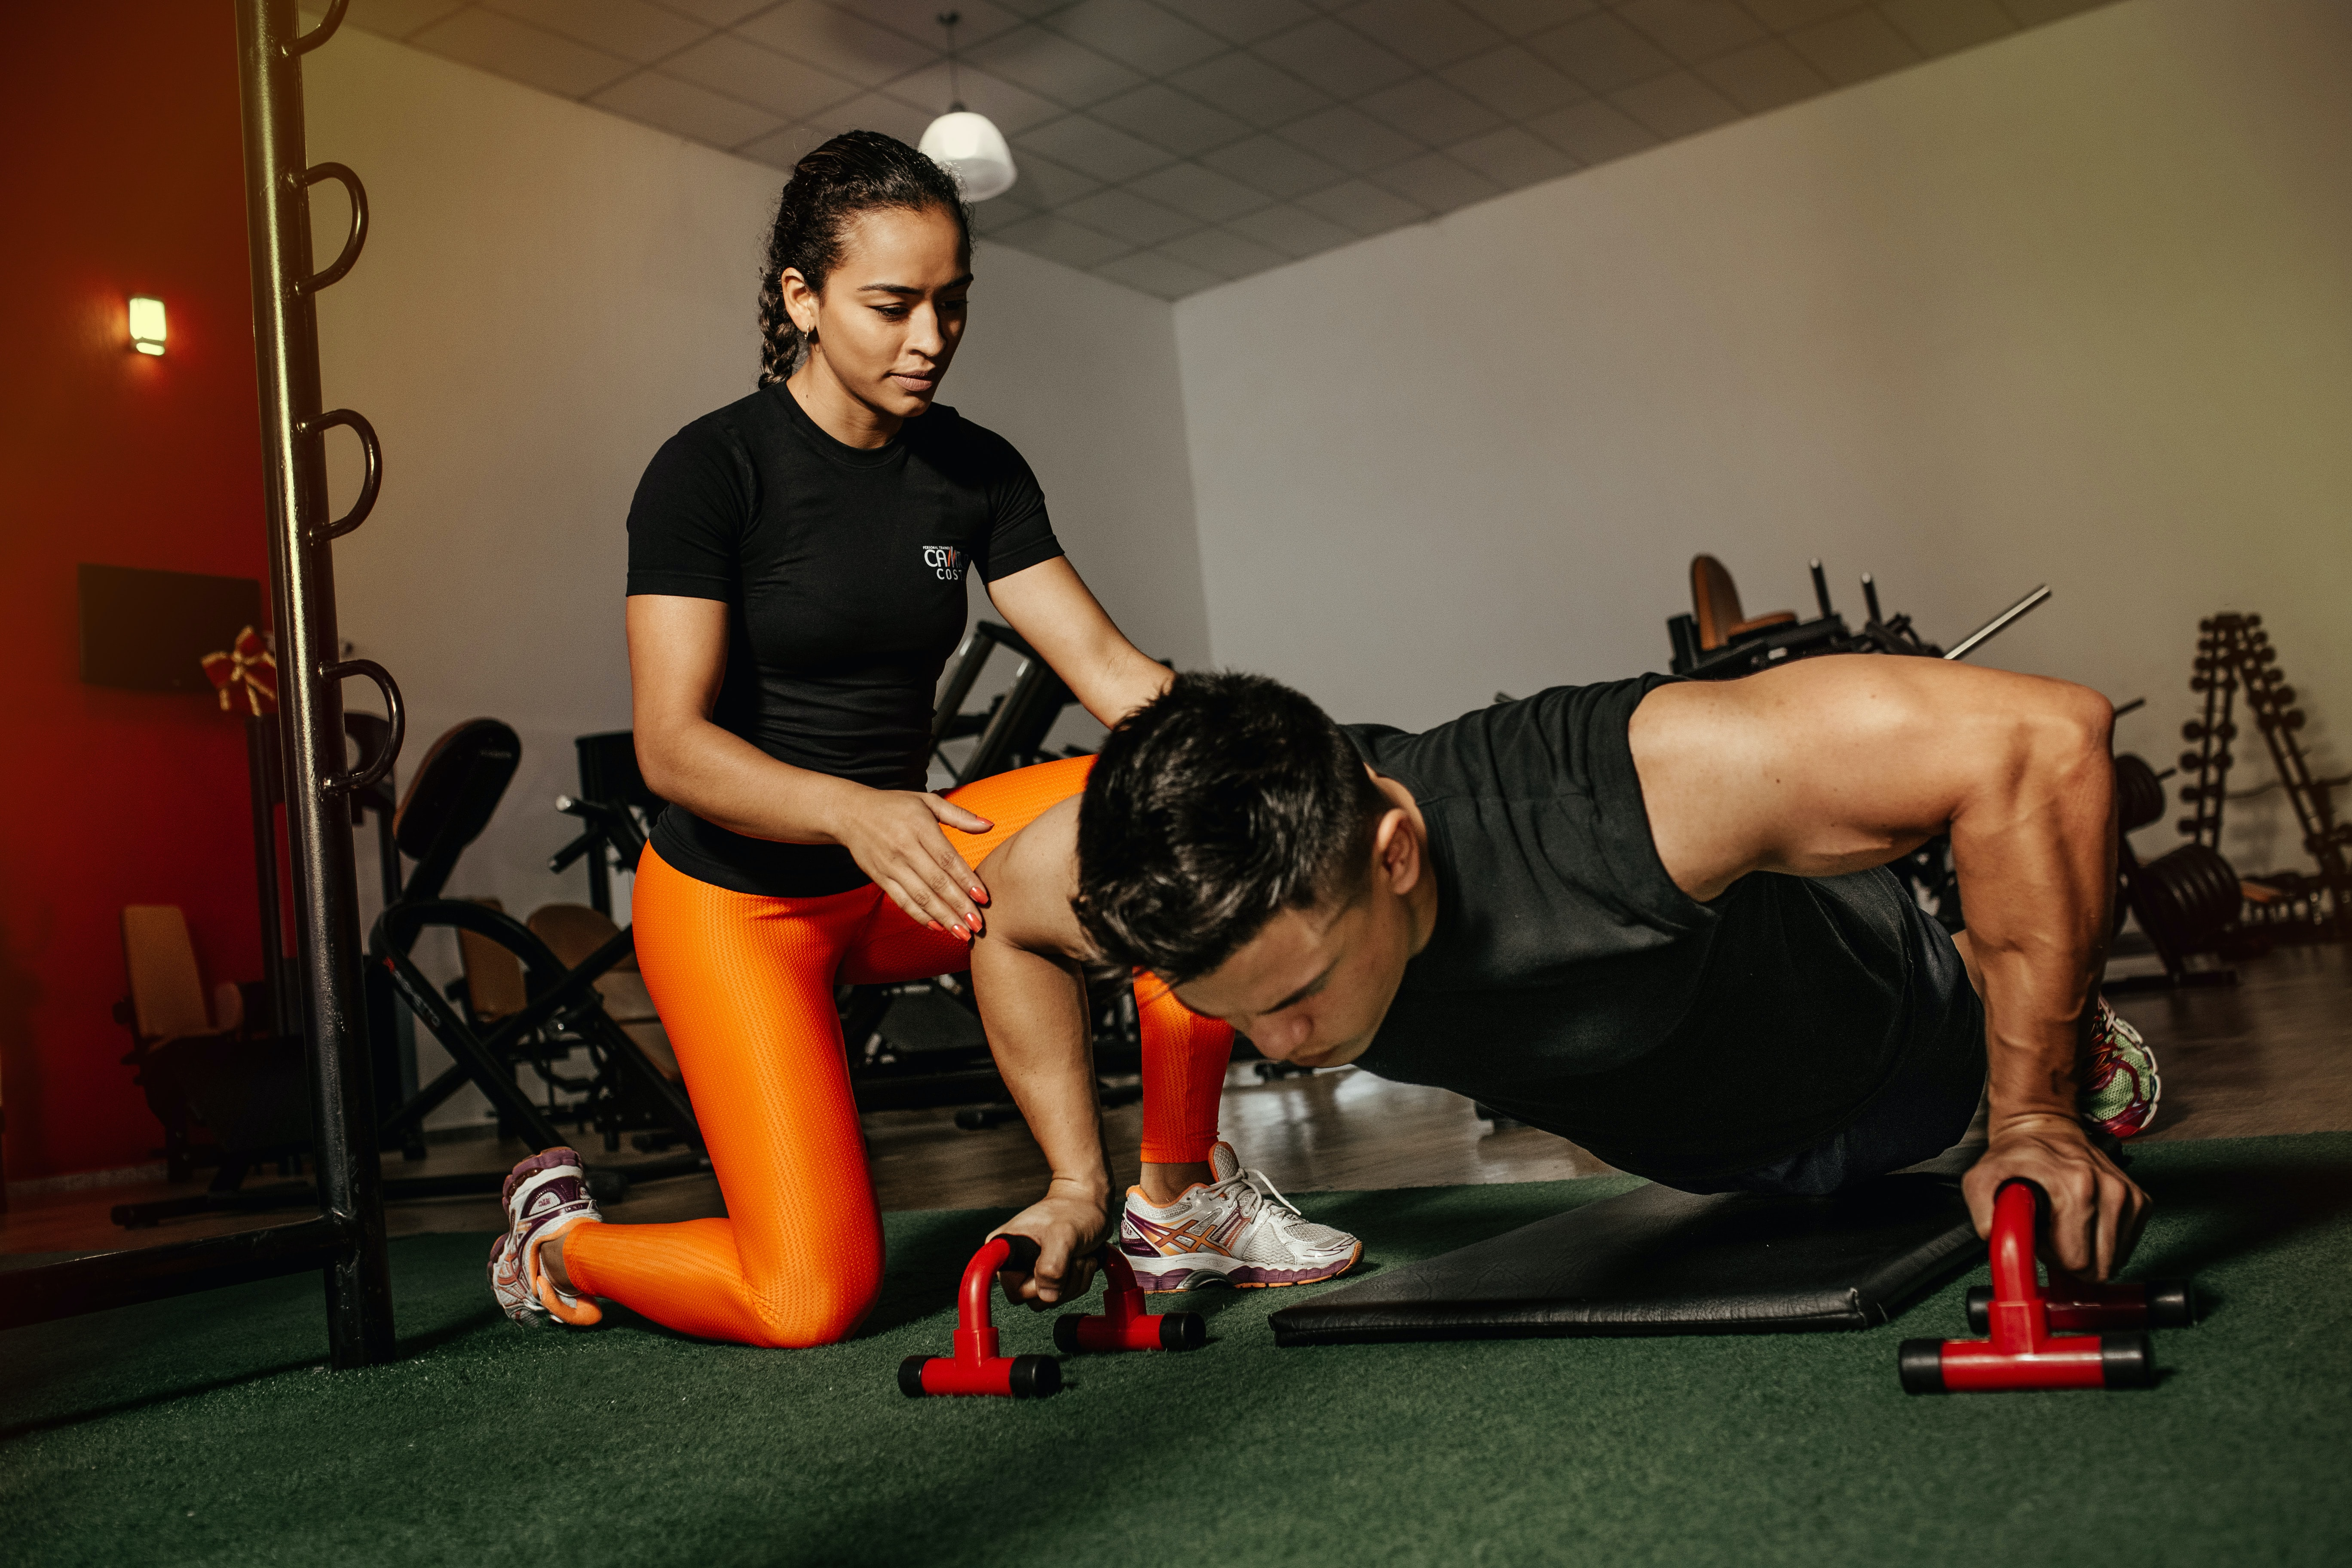 A mental performance coach helping her client who's an athlete